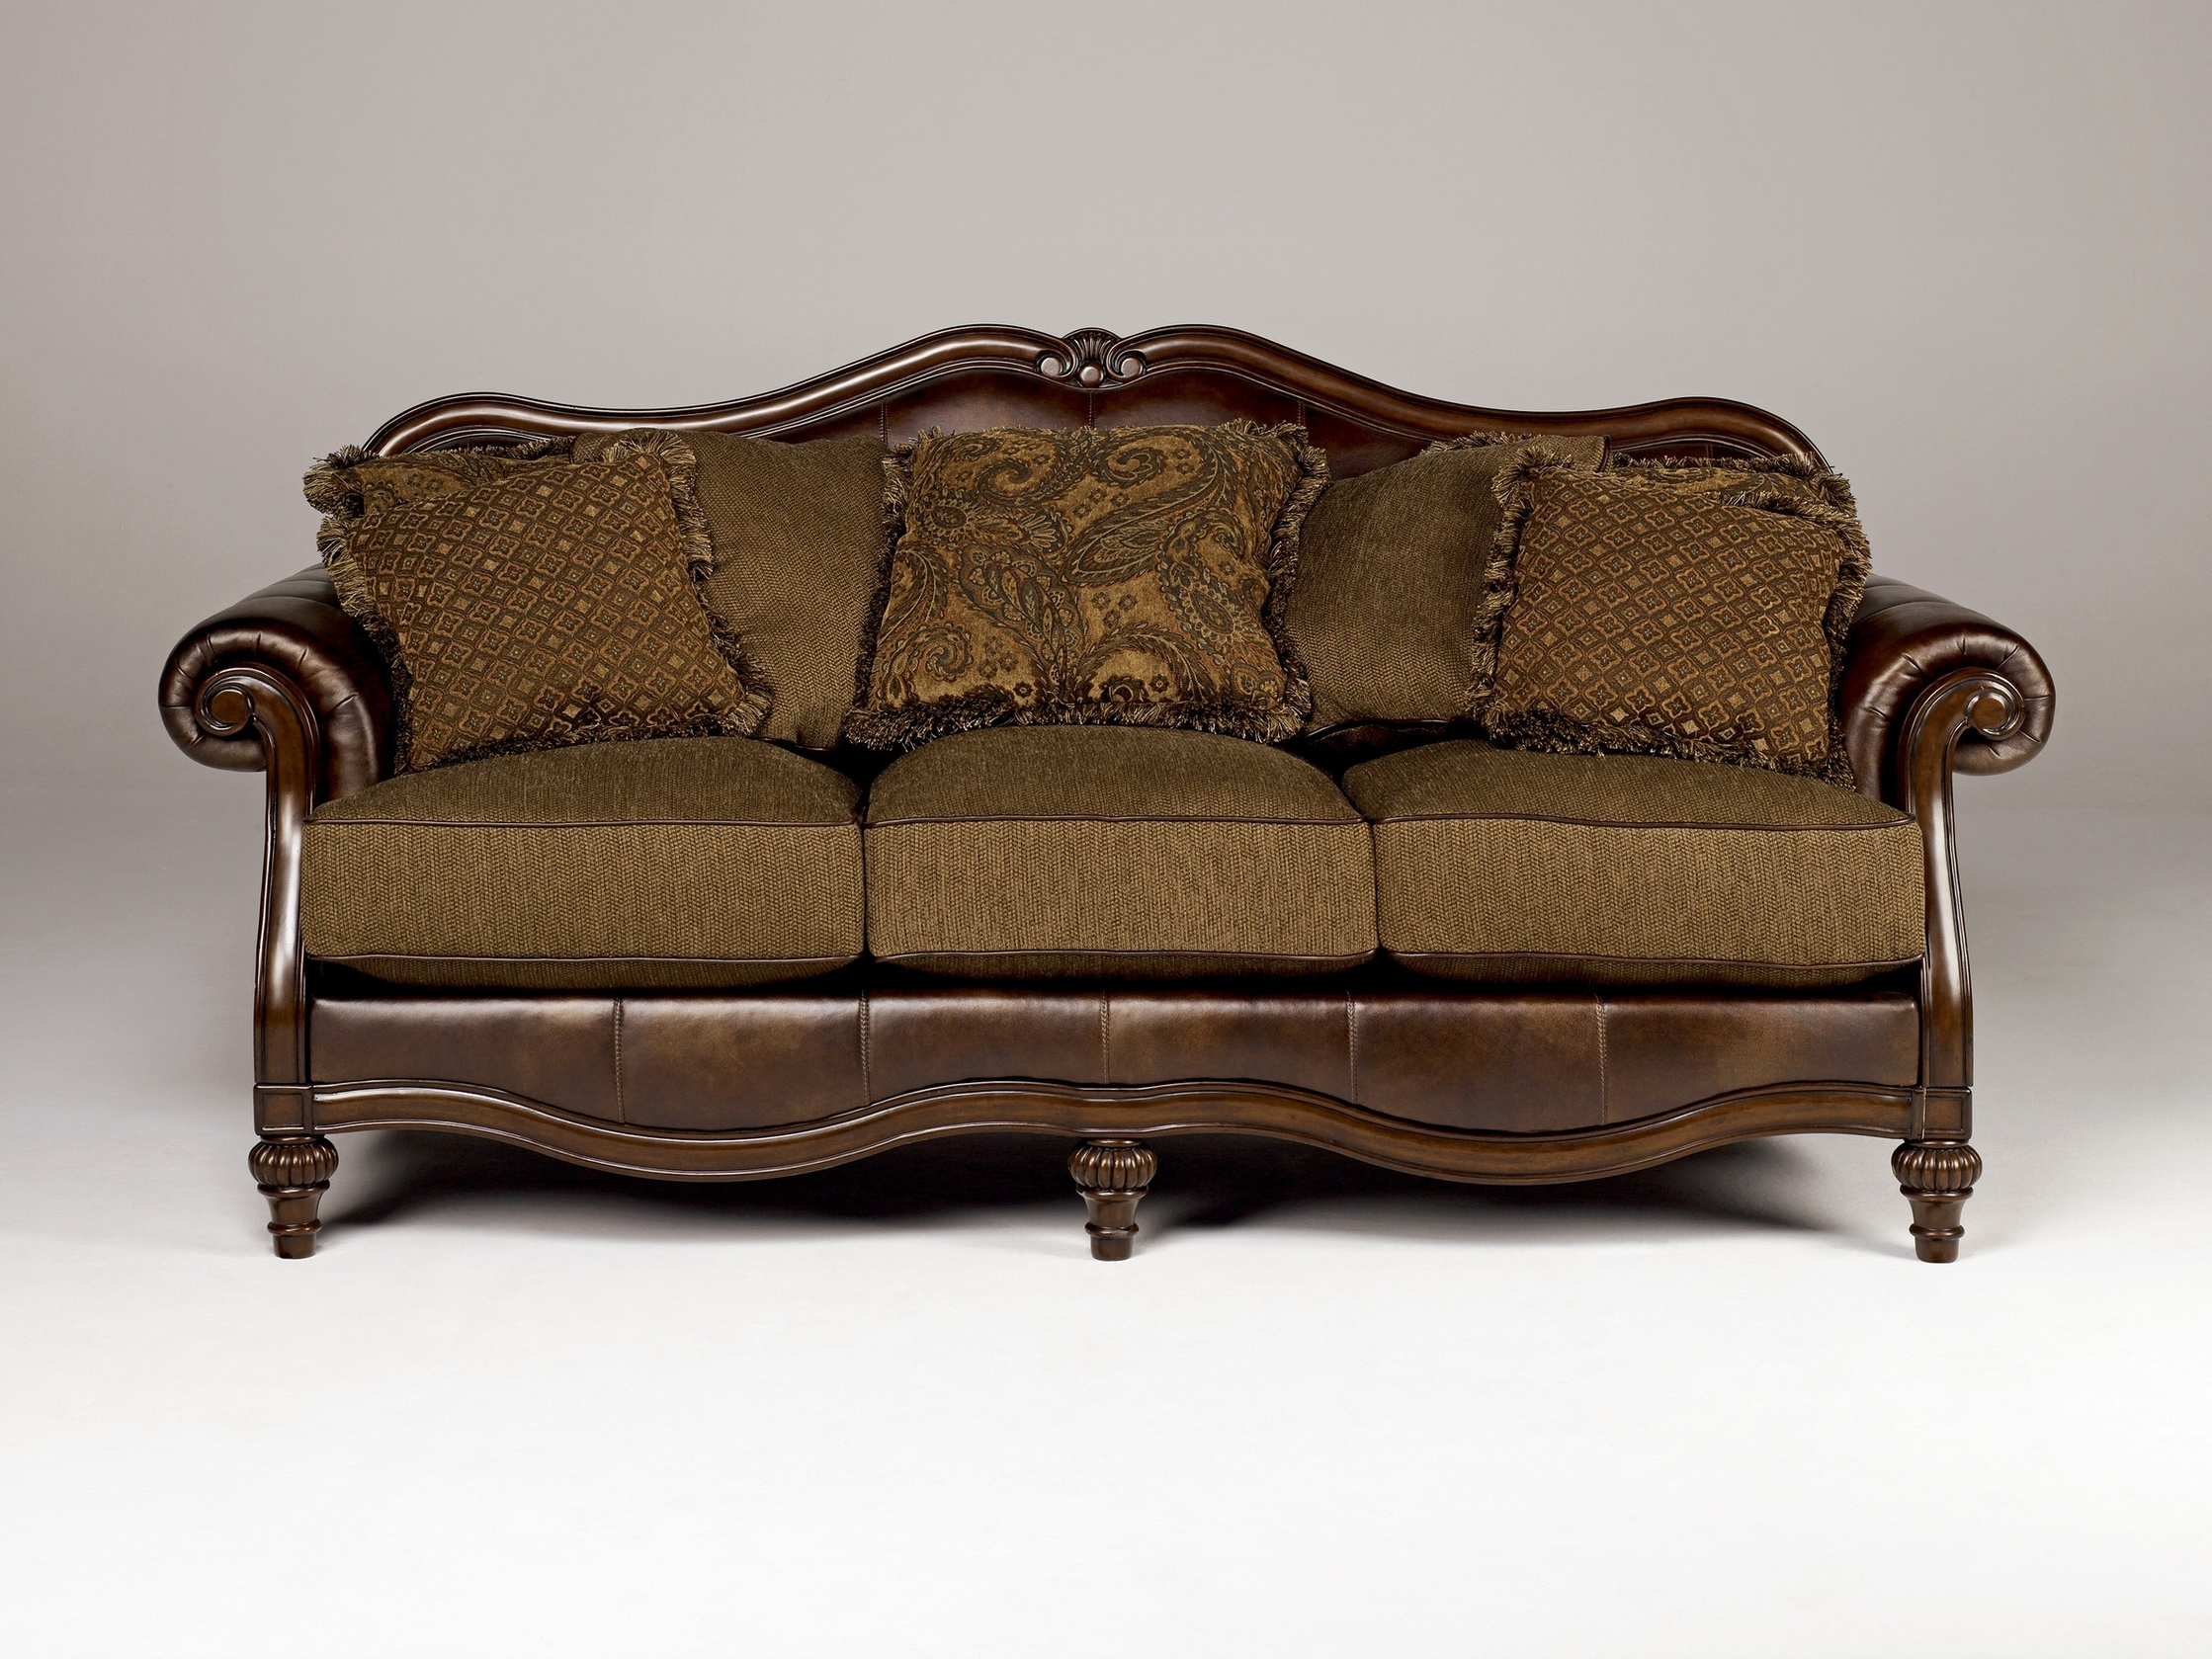 Truffle Traditional Sofa Set Old World Couch Wood Trim Cozy Fabric Regarding Best And Newest Chintz Sofas And Chairs (View 19 of 20)